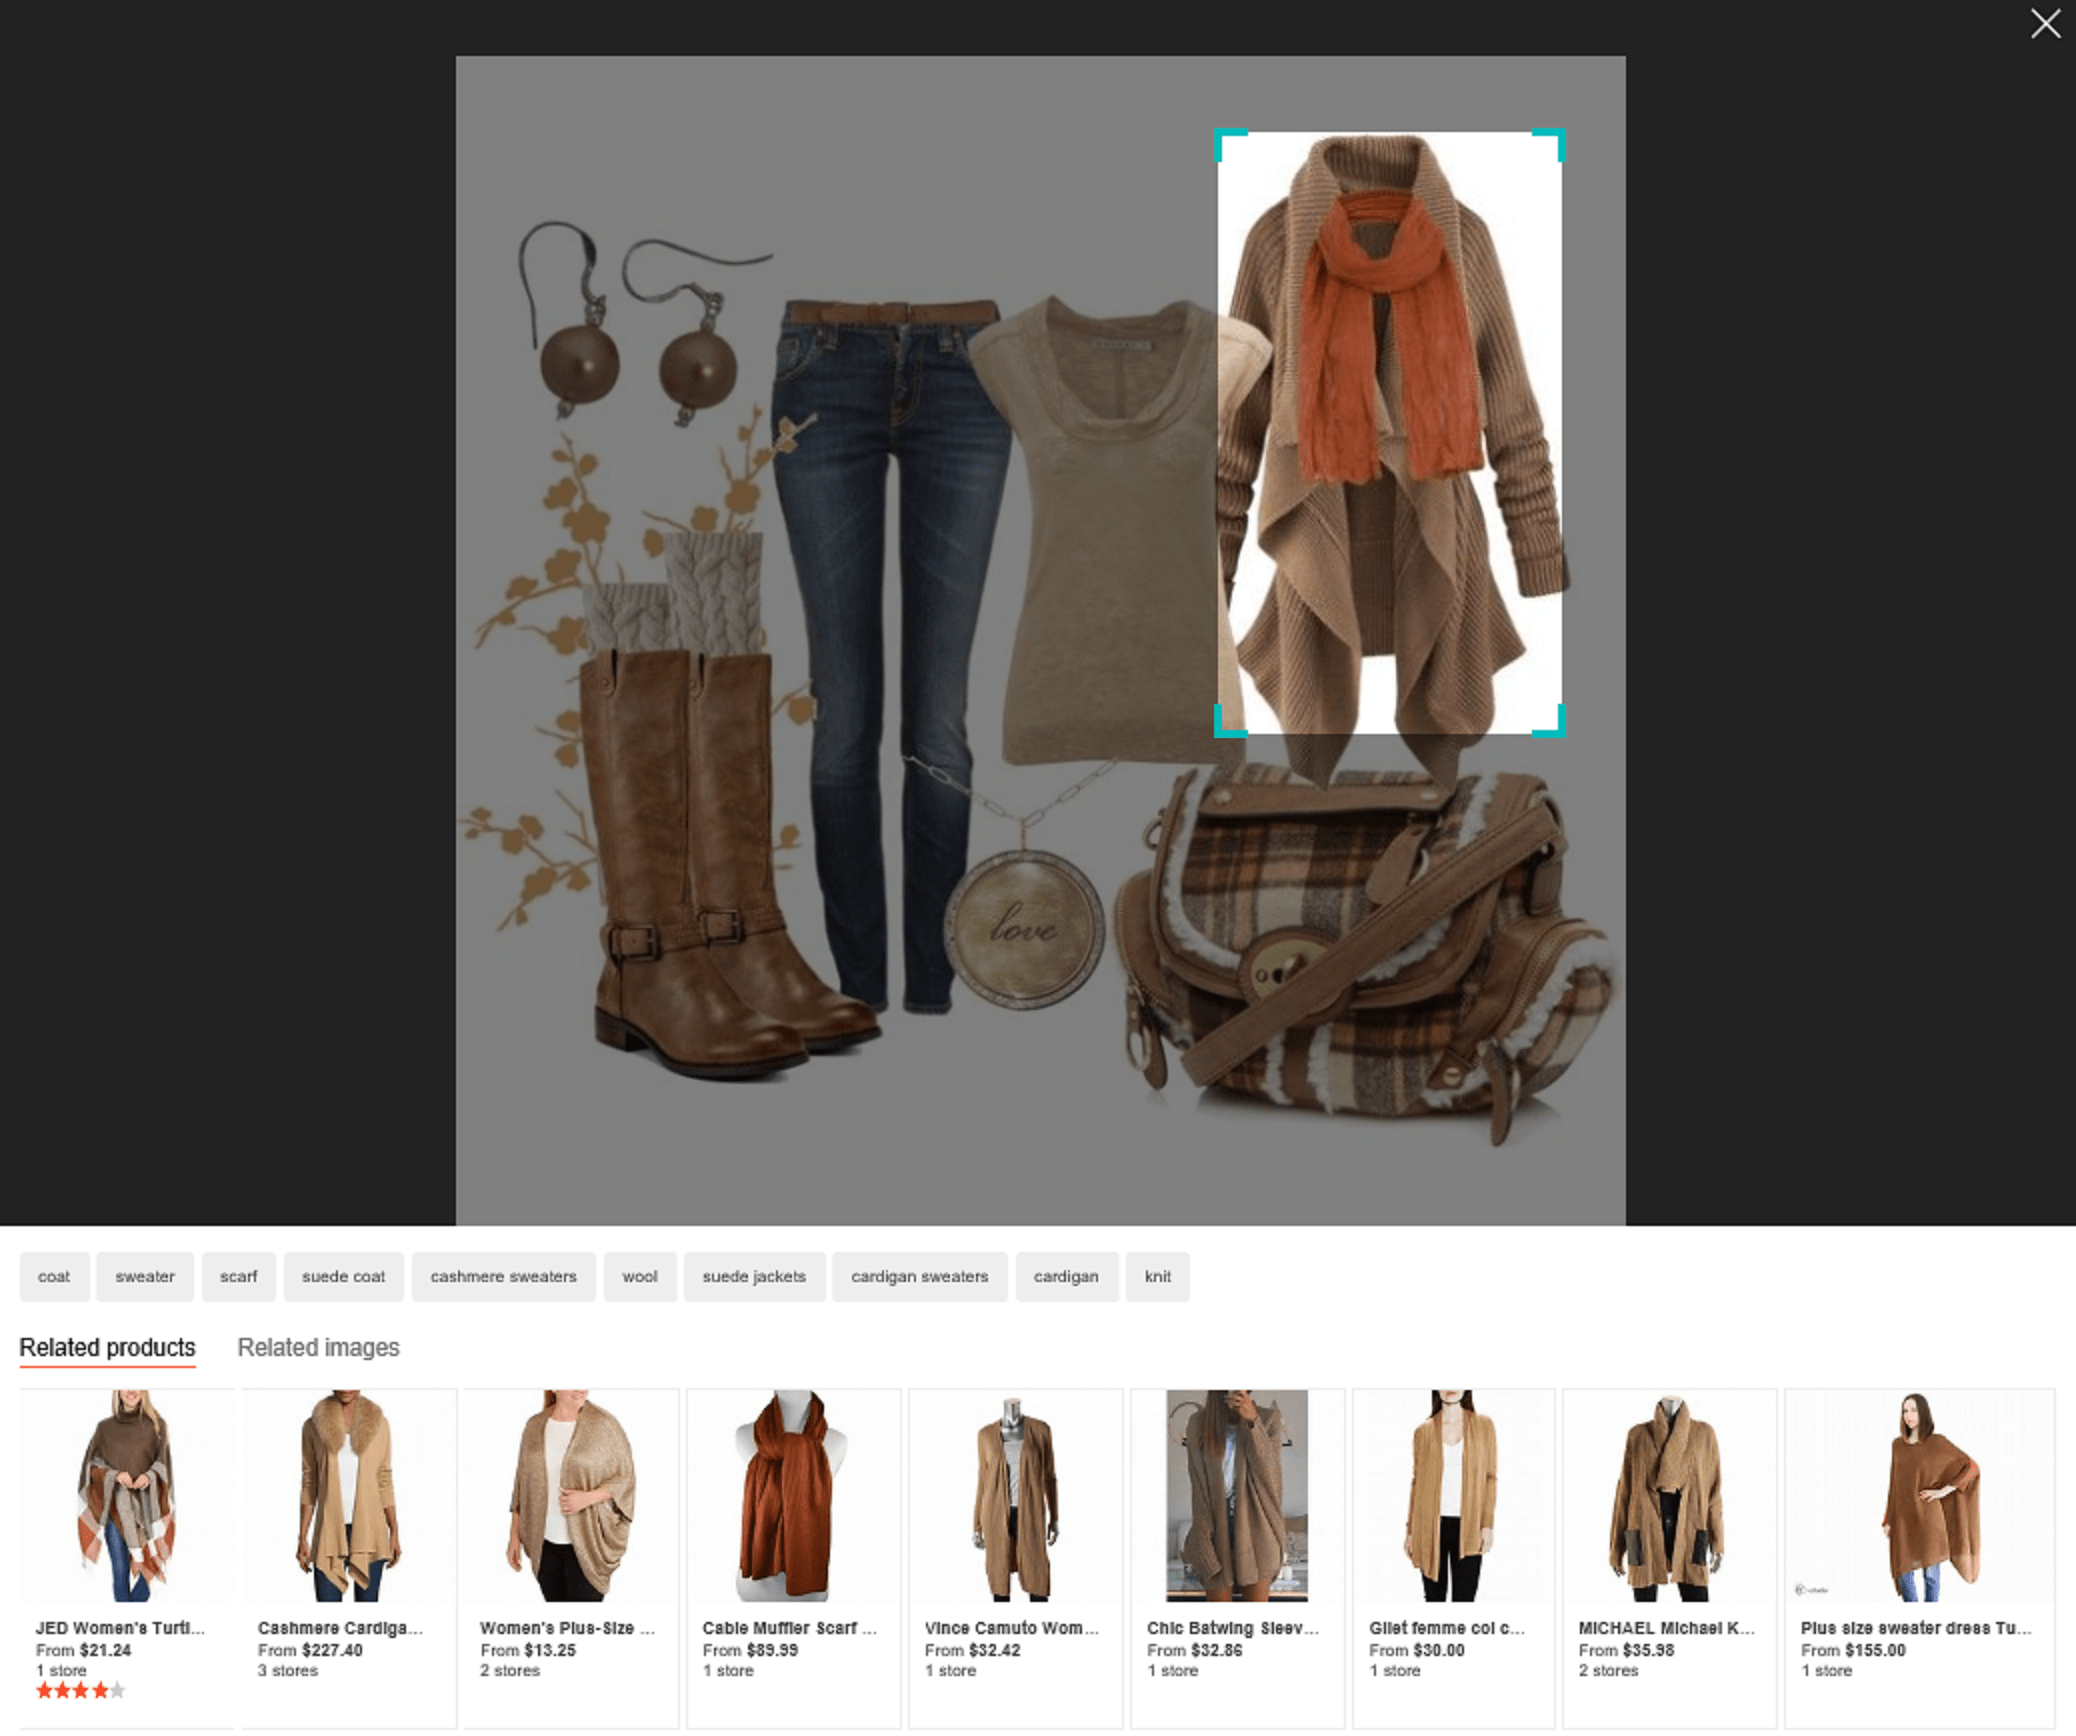 Bing Upgrades Visual Search With Object Detection Technology